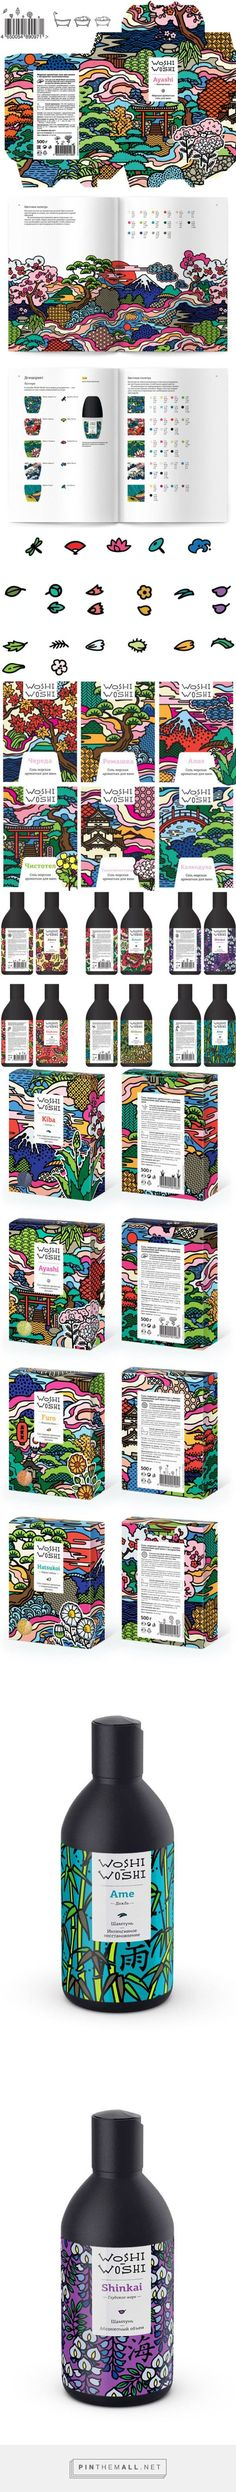 "Art Lebedev Studio - Woshi Woshi curated by Packaging Diva PD. Awesome expanded ""Wooshi Wooshi"" a most popular team pin."